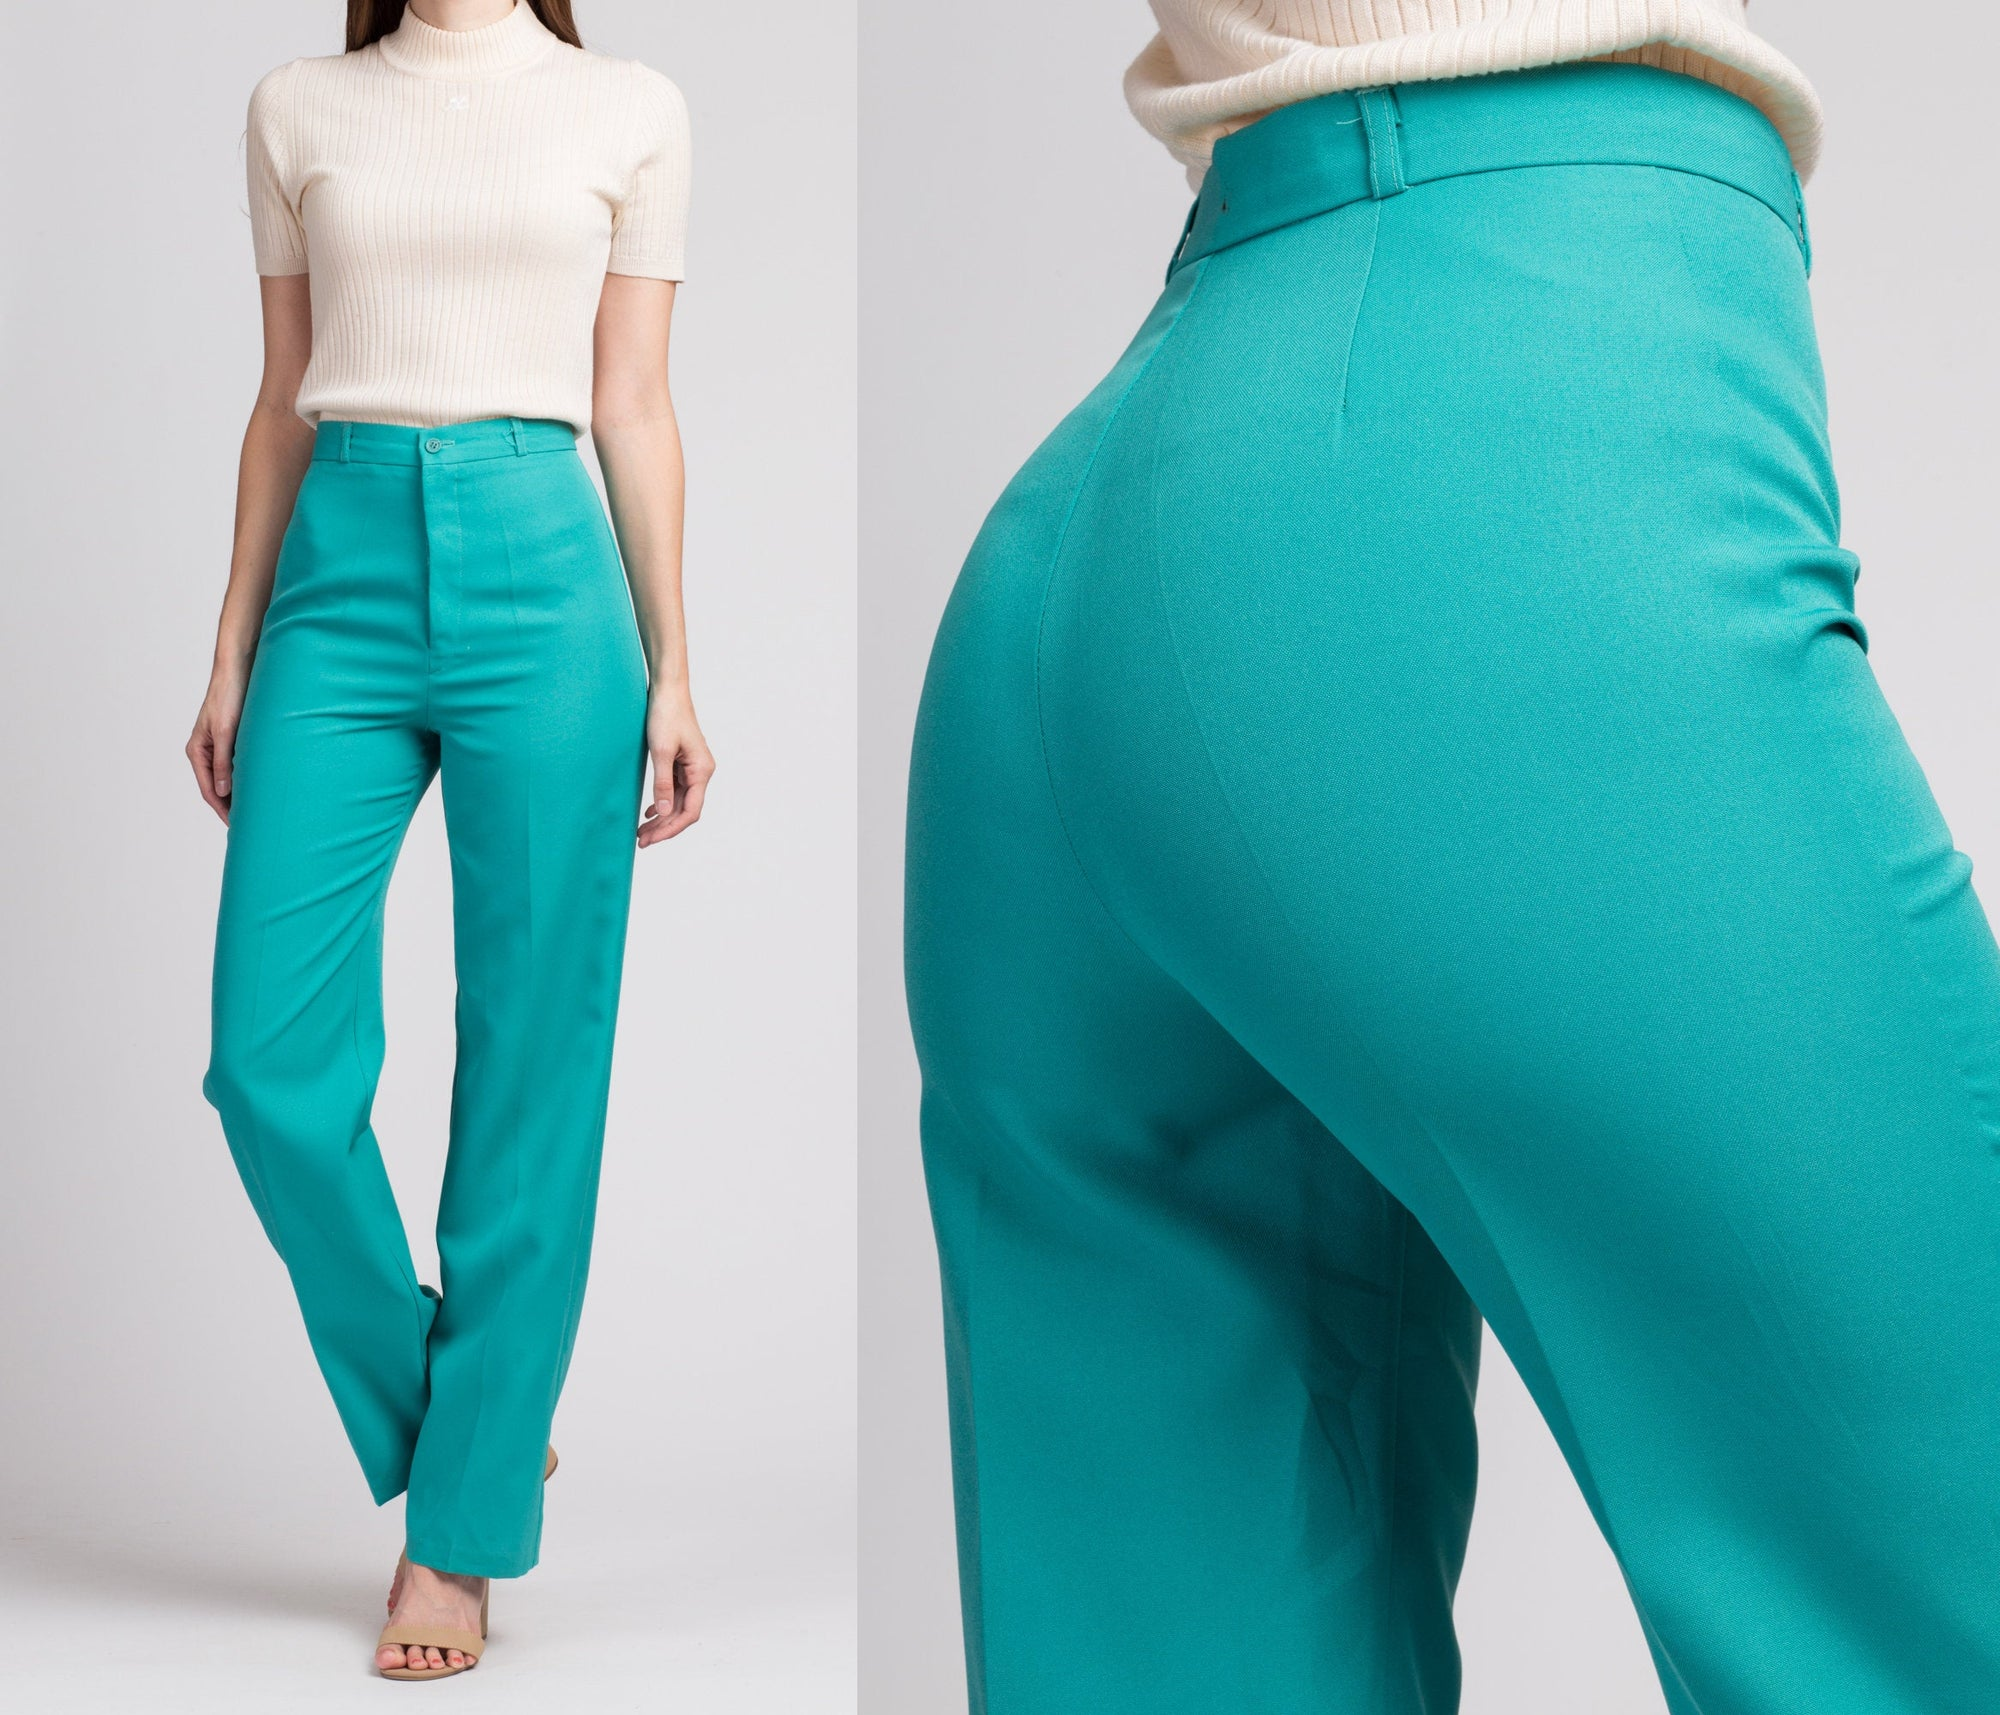 Vintage Turquoise High Waist Trousers - Small, 26""